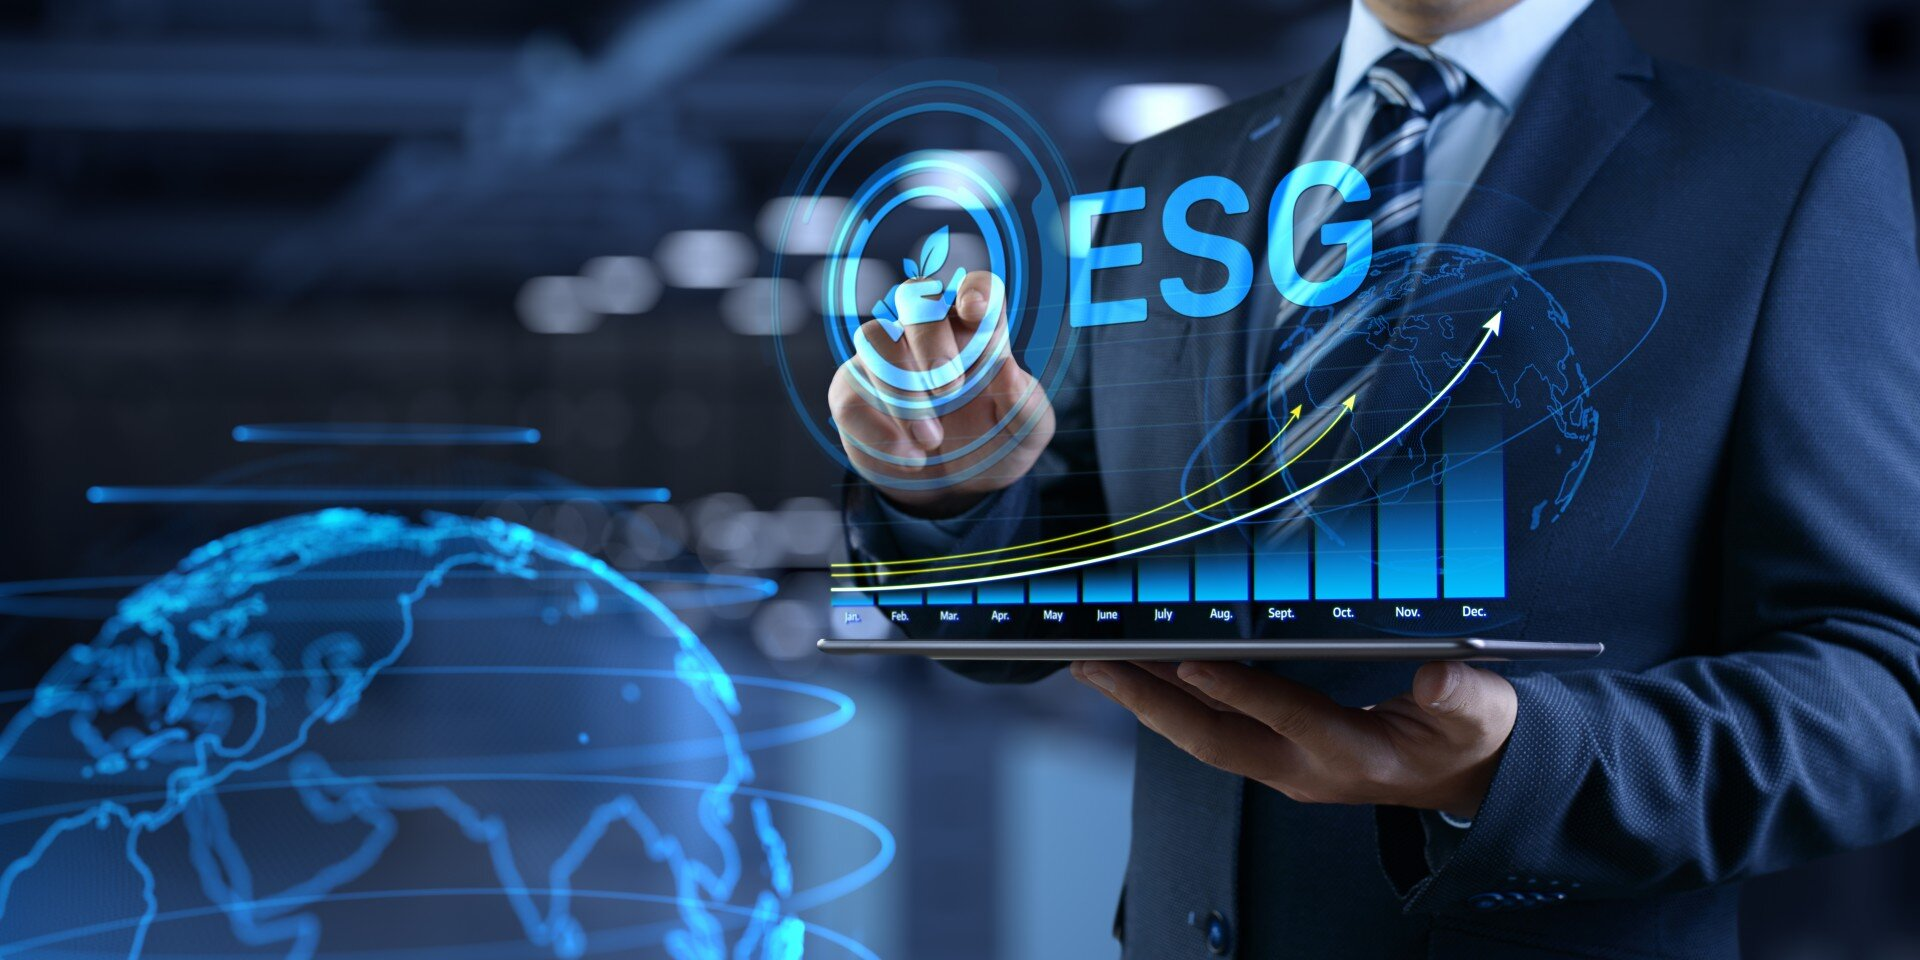 Asian companies lag behind their European and US counterparts on meeting ESG standards